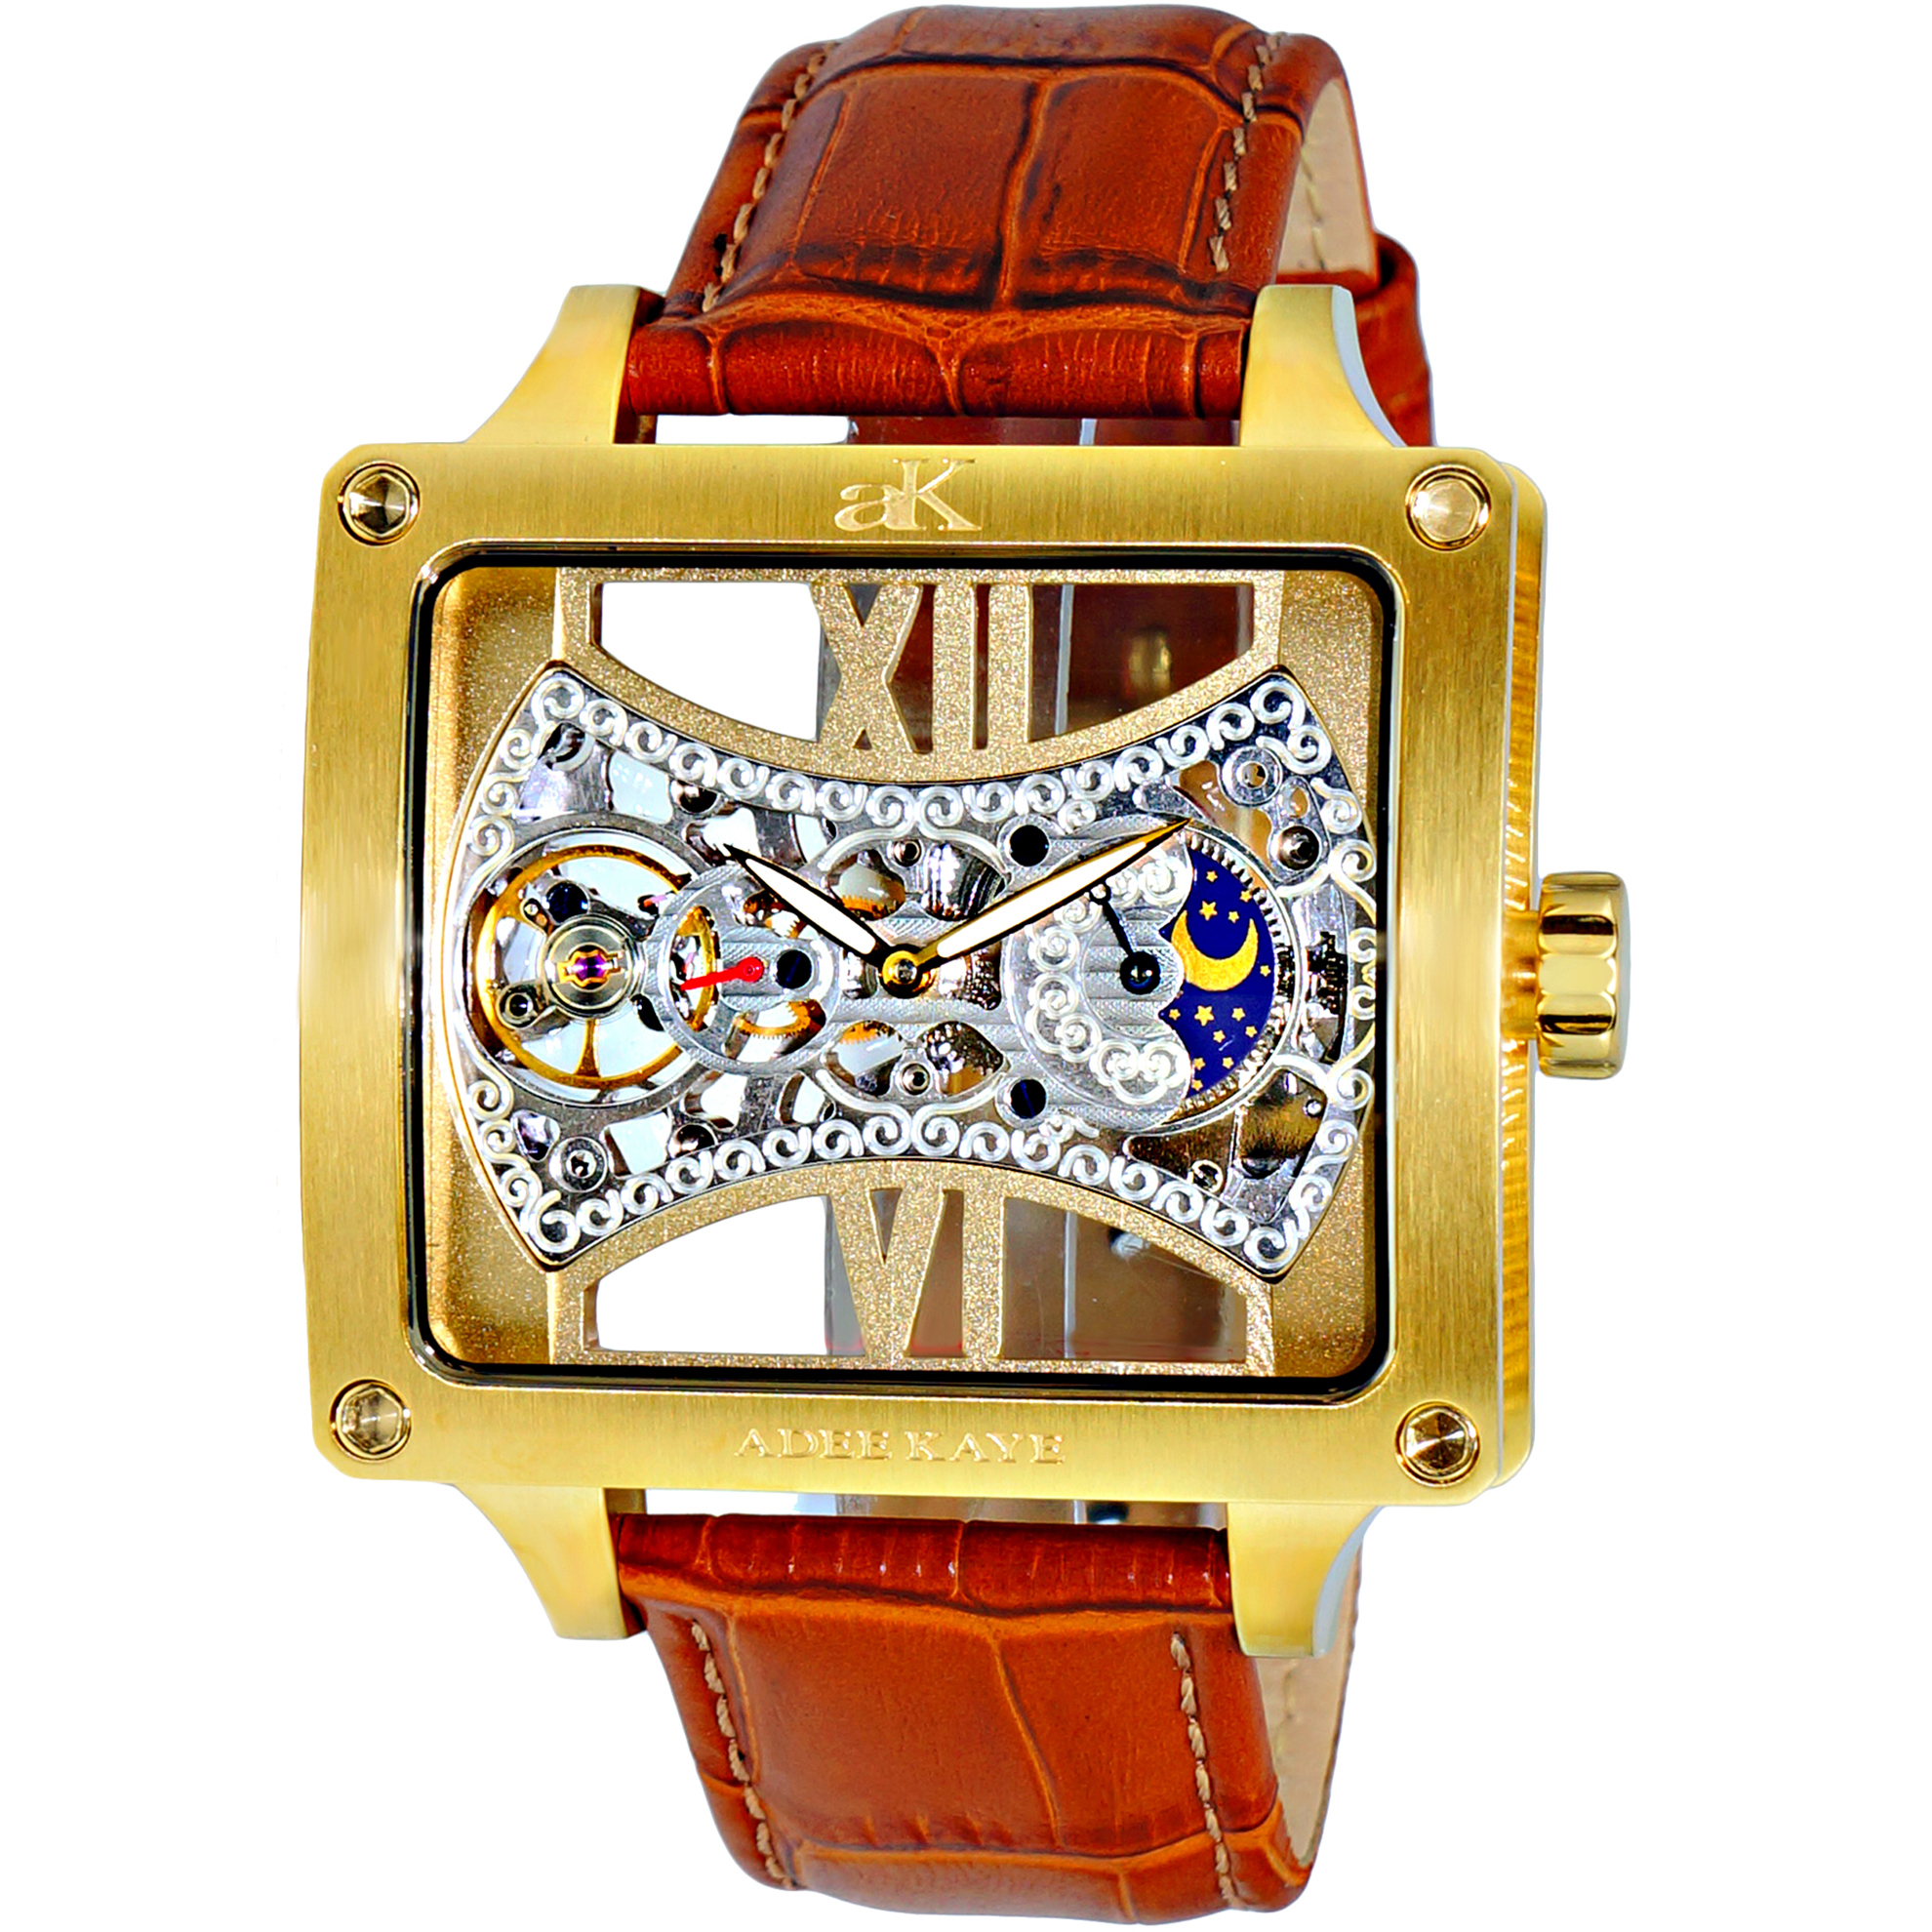 Adee Kaye AK2297-MG Adee Kaye Skeleton 18 Jewels Automatic Moonphase Gold Brown Leather Strap